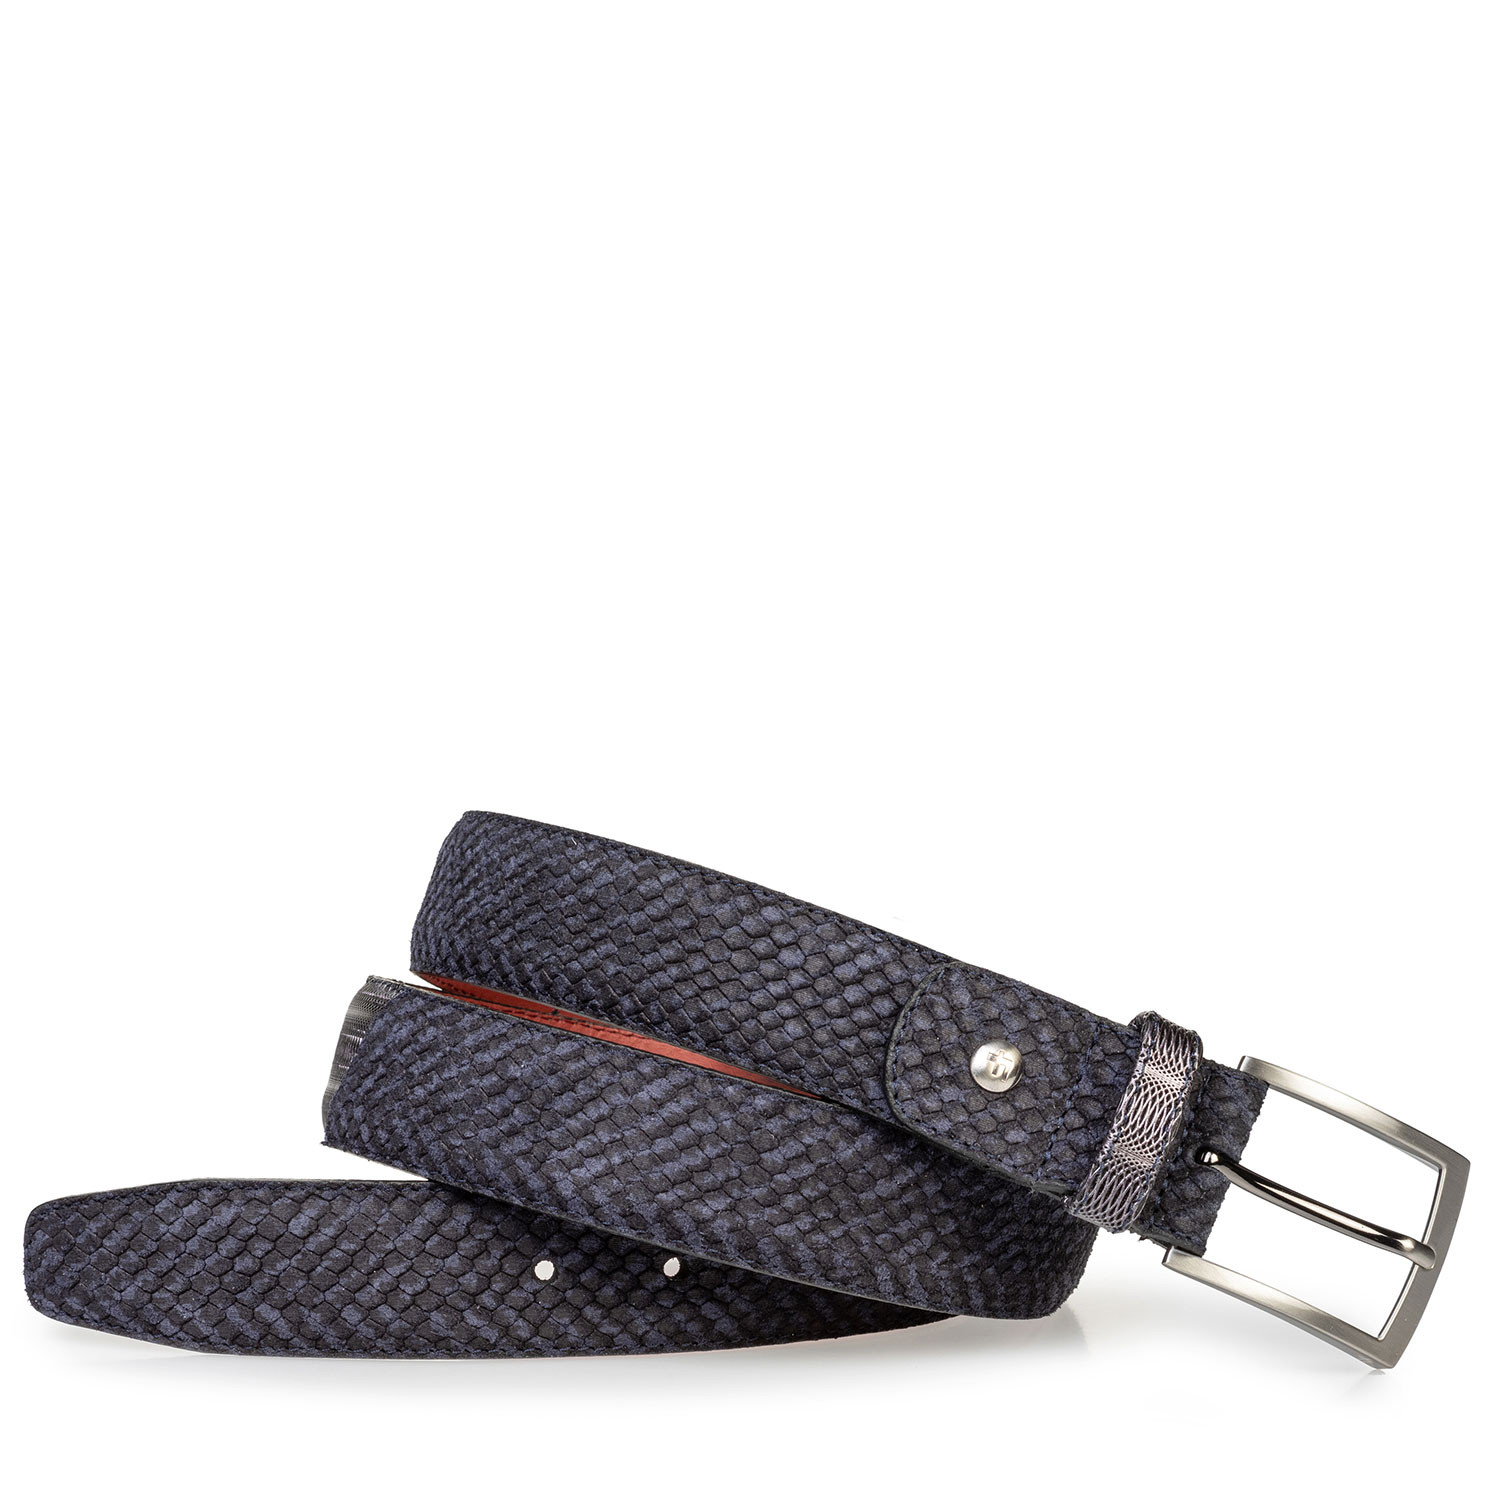 75188/78 - Suede leather belt blue with black print